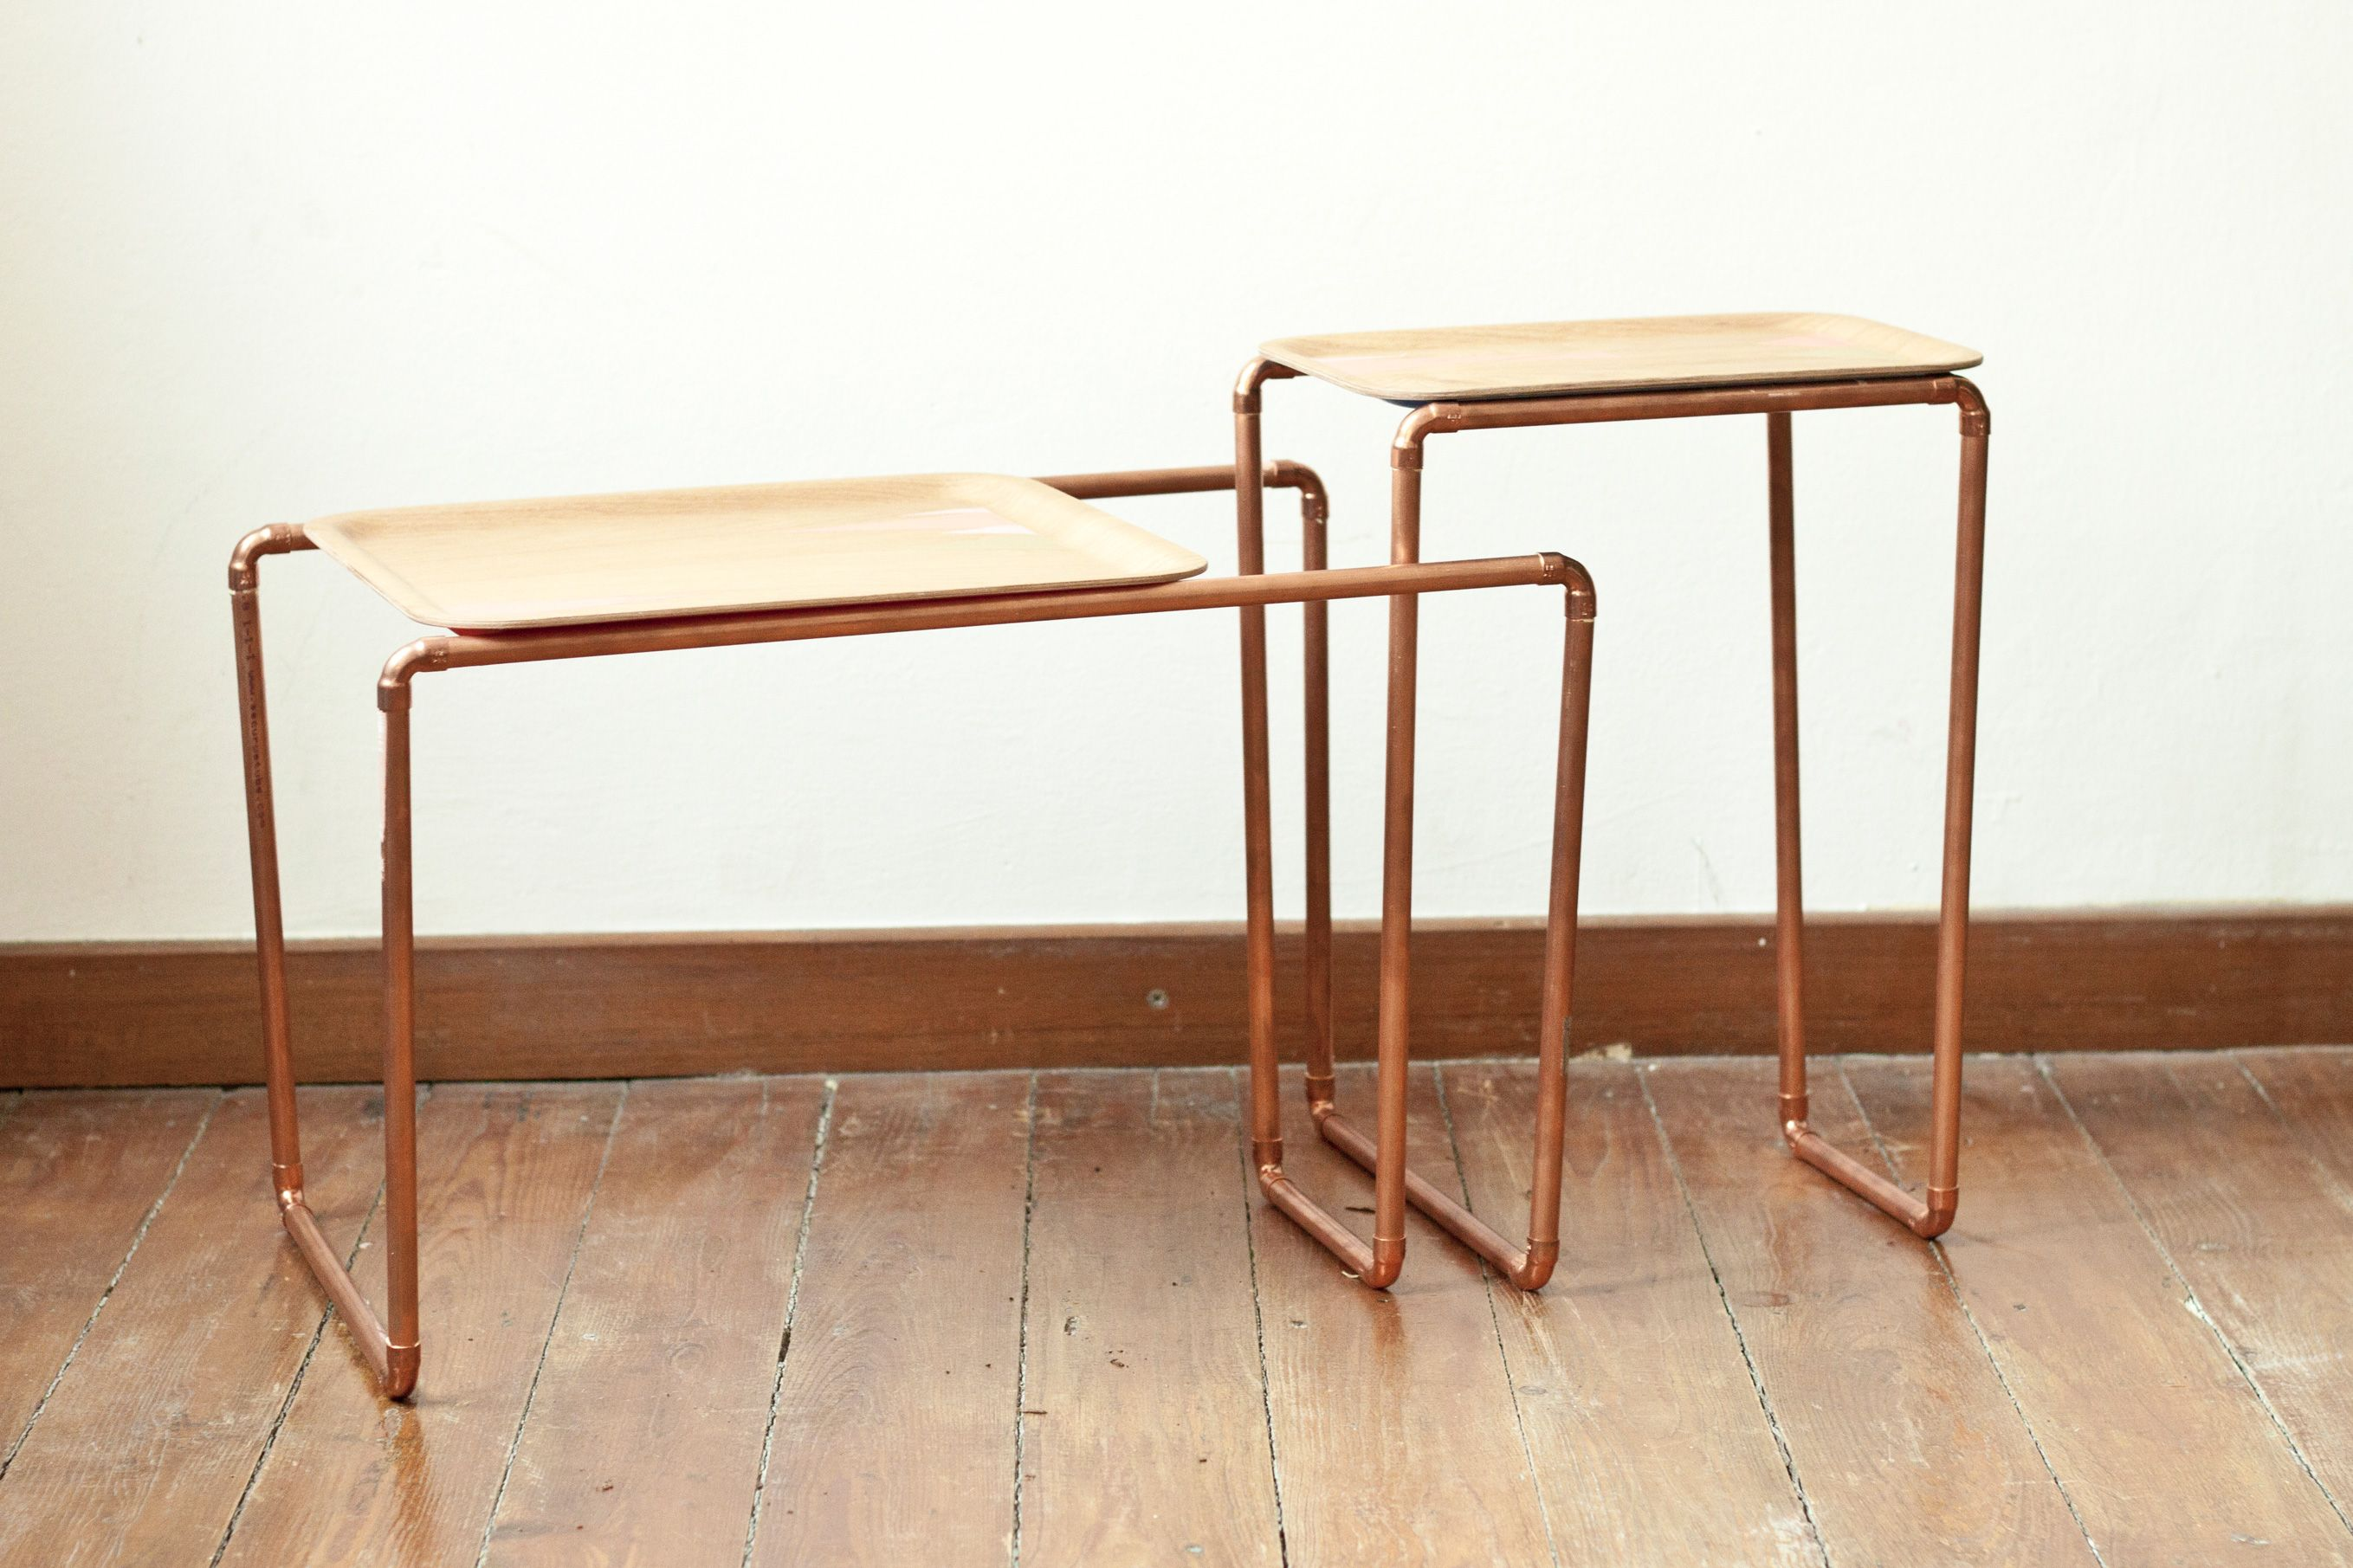 Palmbomen Made This Cute Side Tables Out Of Copper Tubes And Wooden Trays.  Measure Your